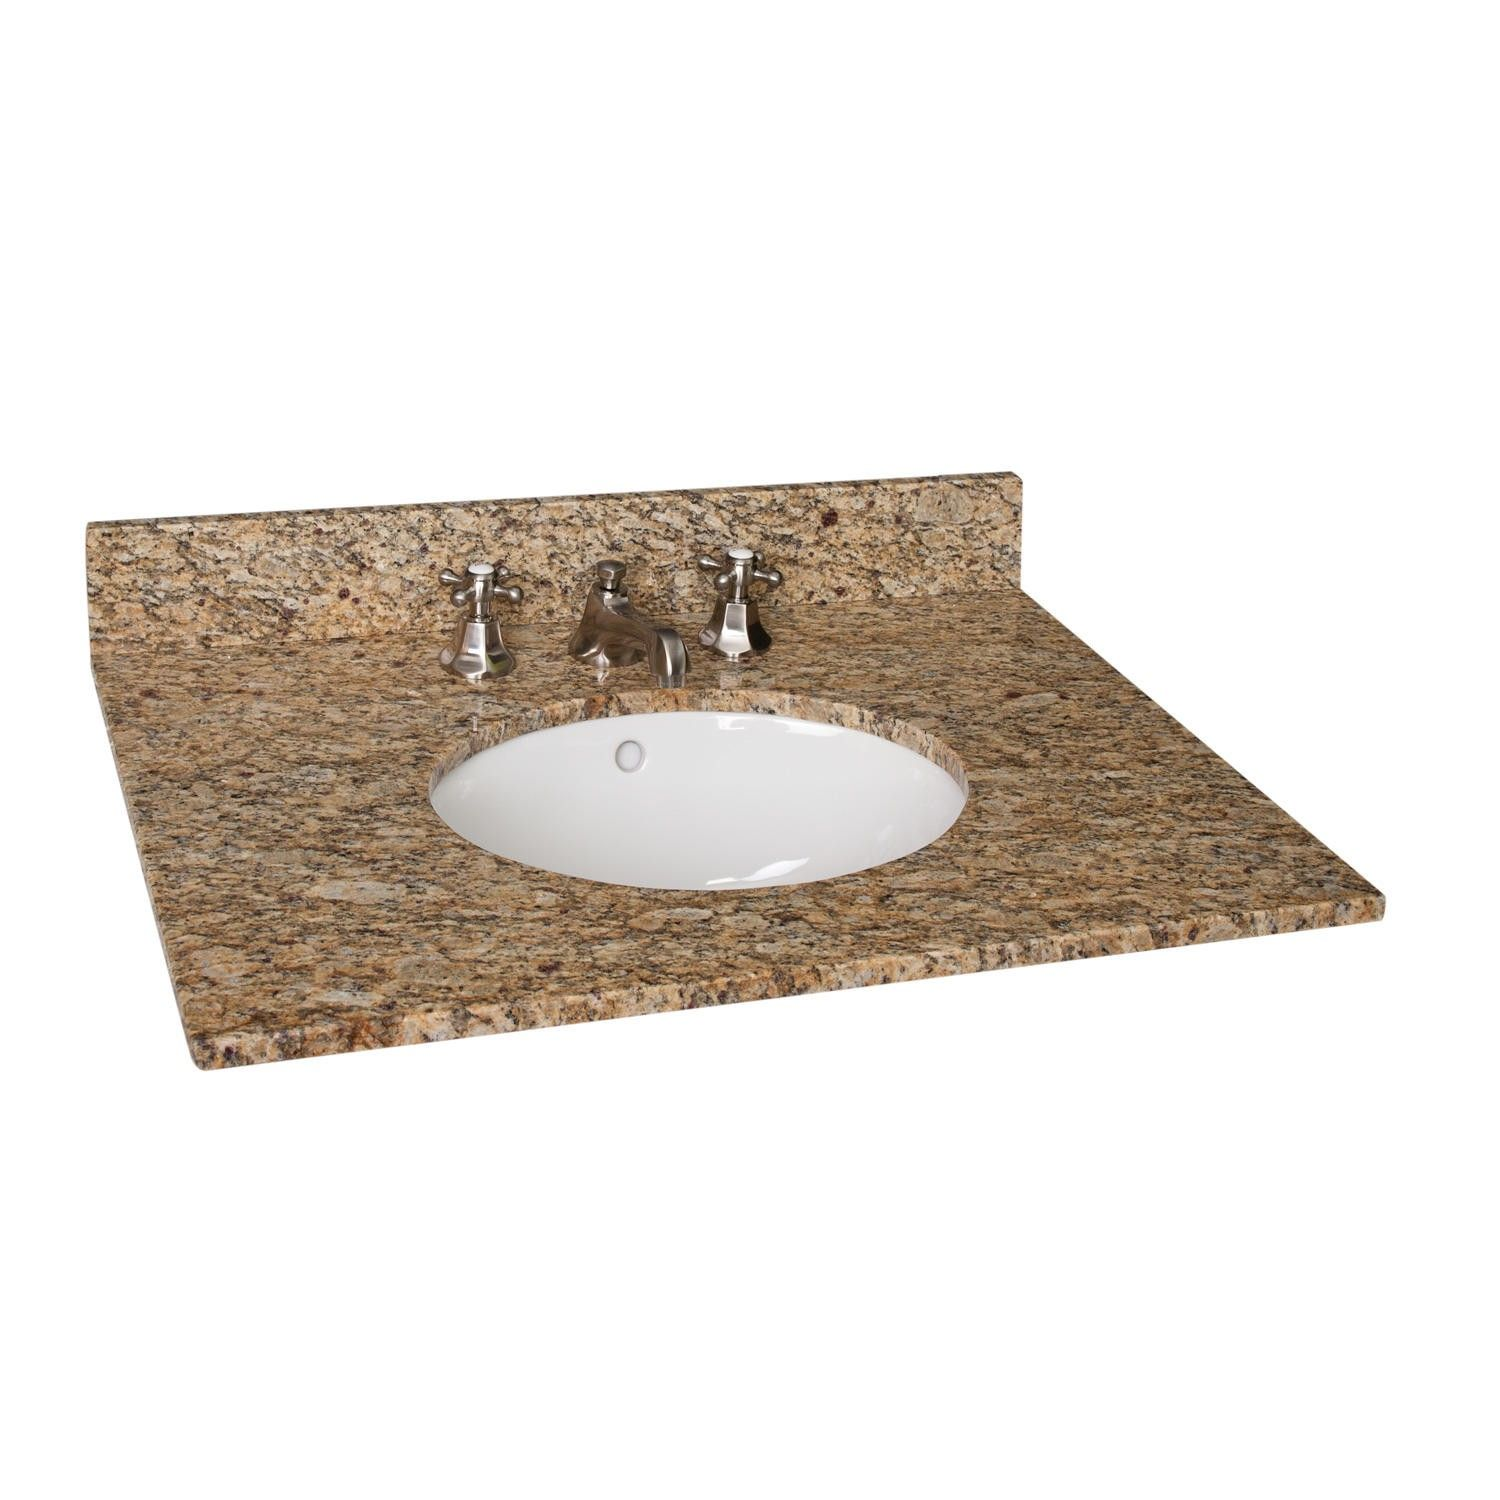 31 X 22 Granite Vanity Top With Undermount Sink